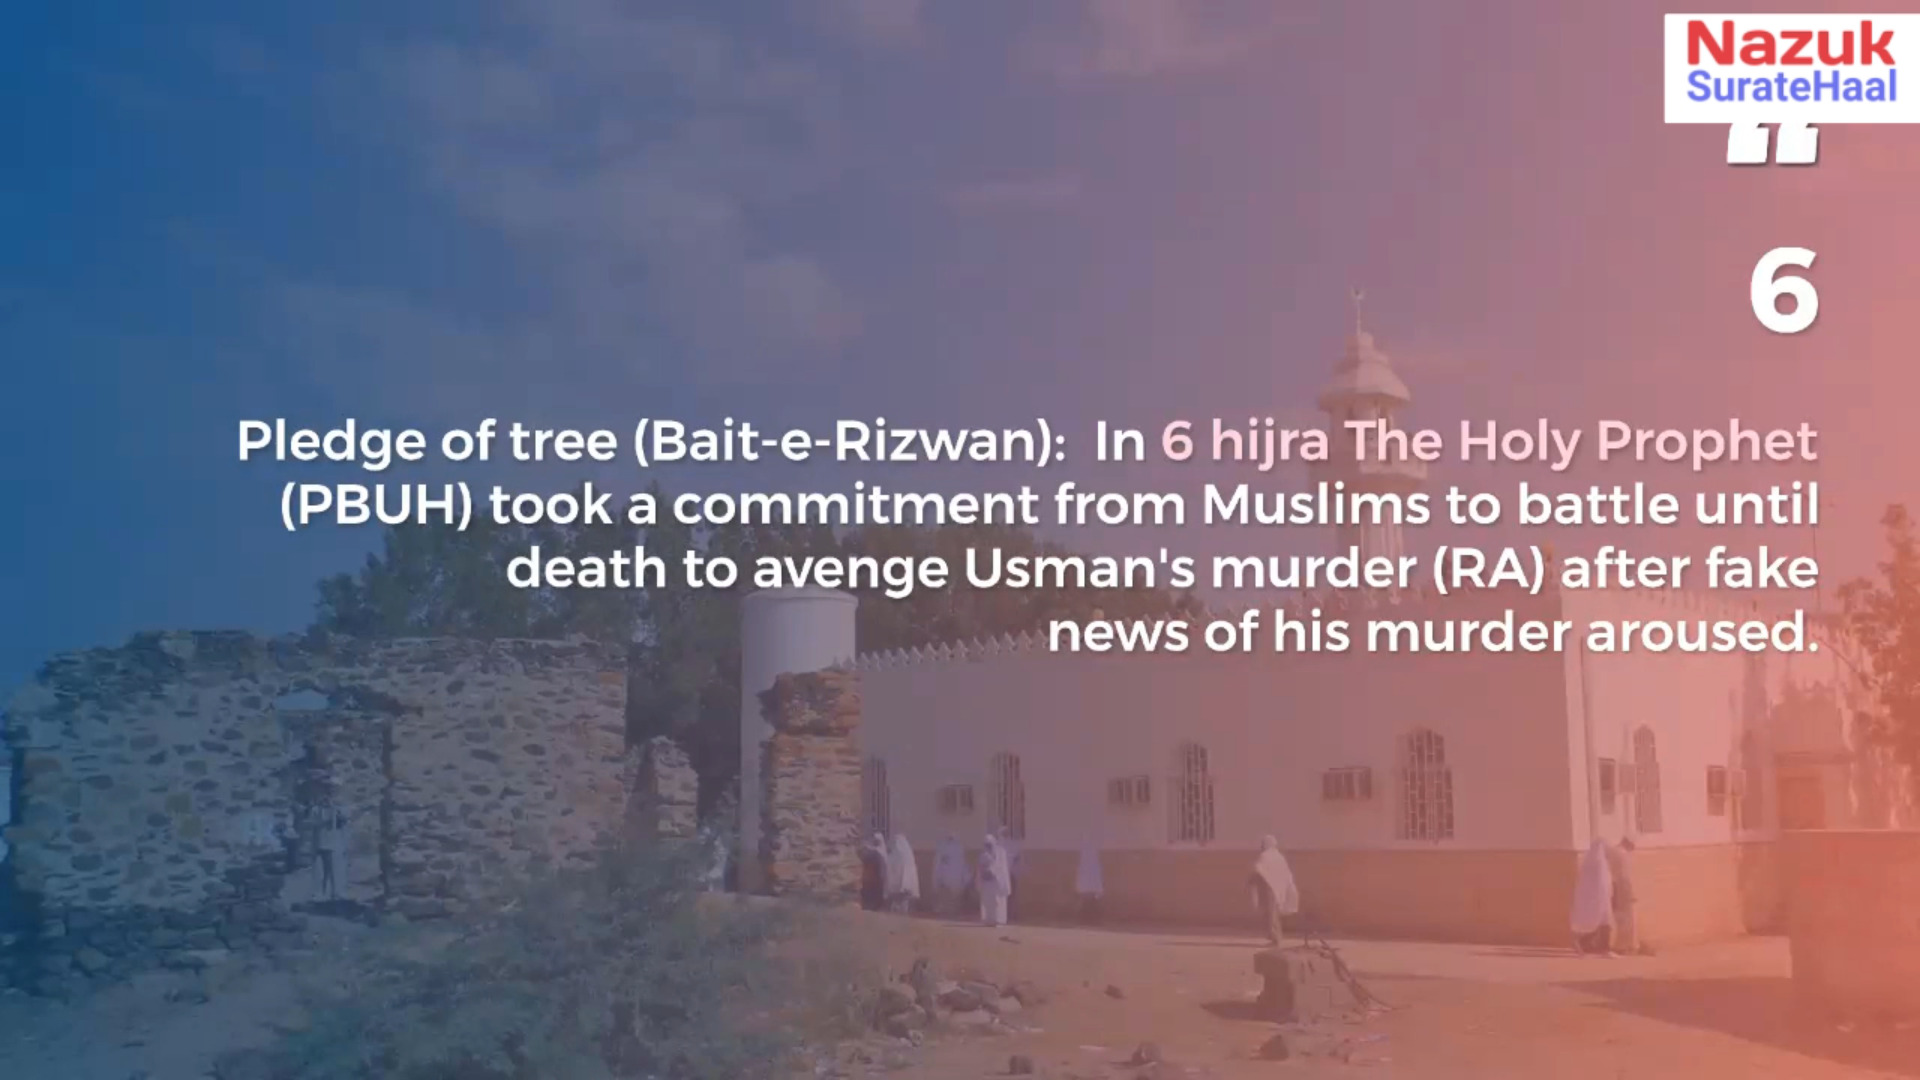 Pledge of tree (Bait-e-Rizwan): In 6 hijra The Holy Prophet (PBUH) took a commitment from Muslims to battle until death to avenge Usman's murder (RA) after fake news of his murder aroused.